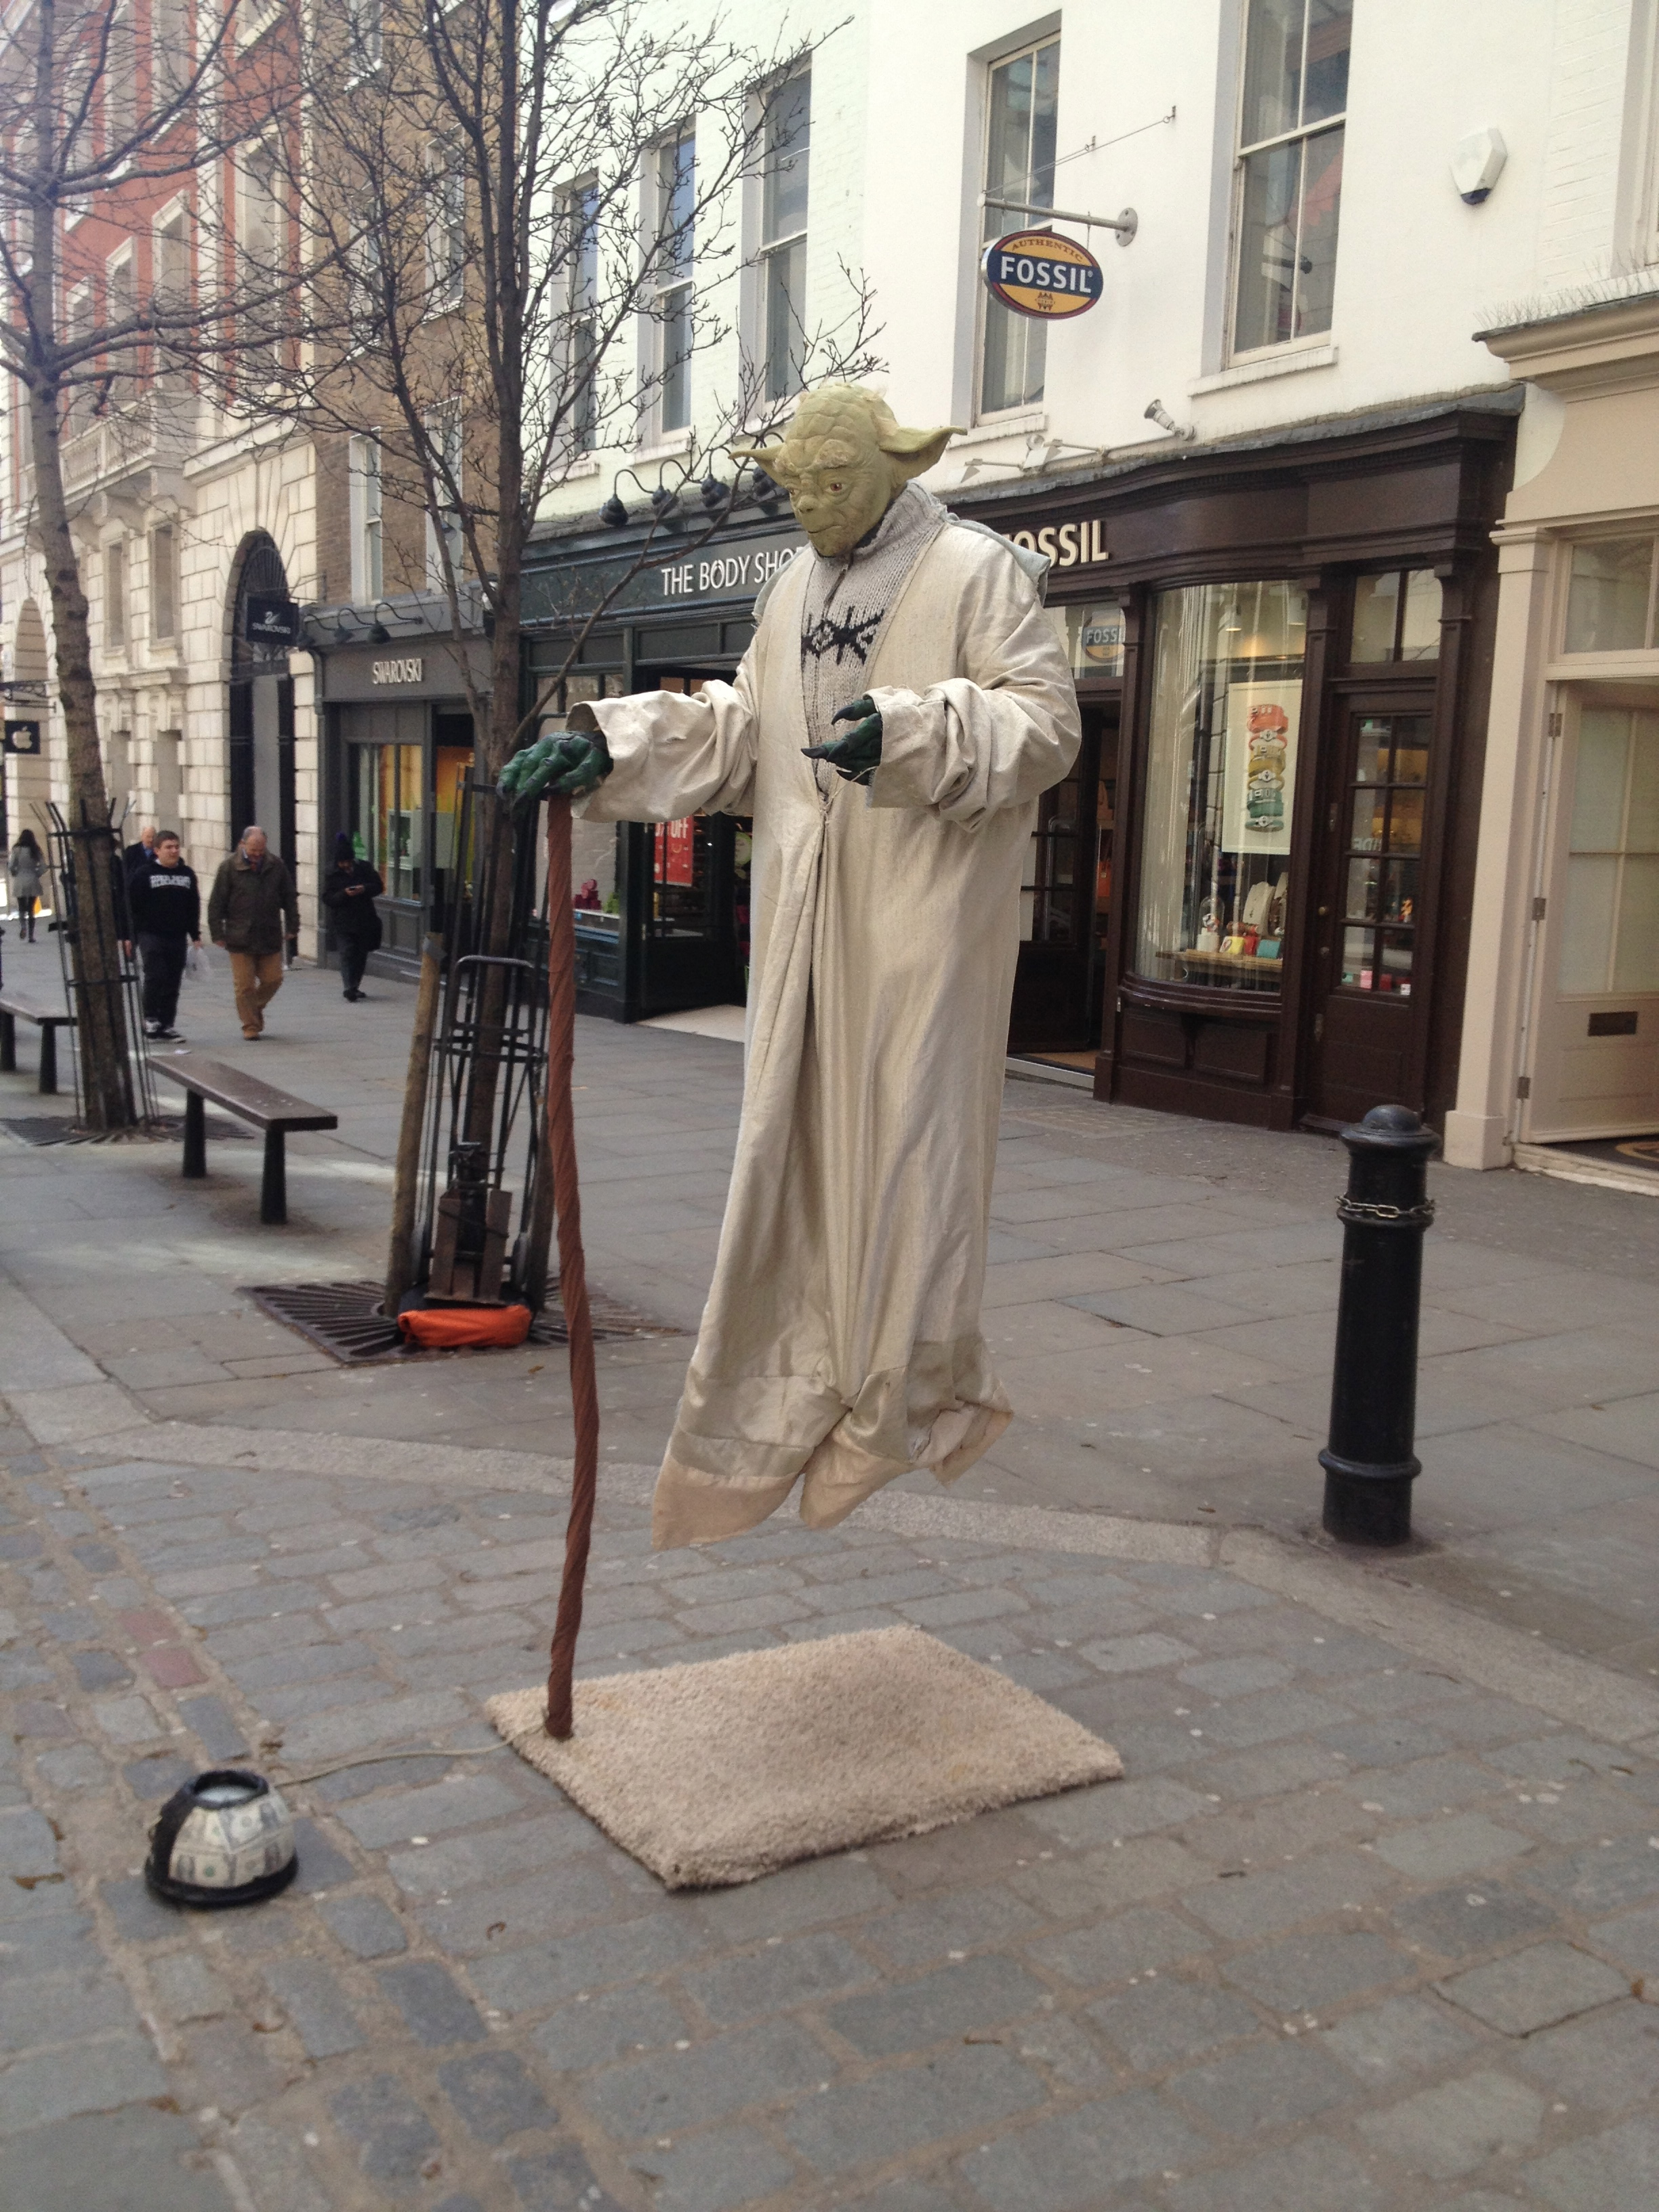 0e5d0e846 I saw Yoda levitating in Covent Garden